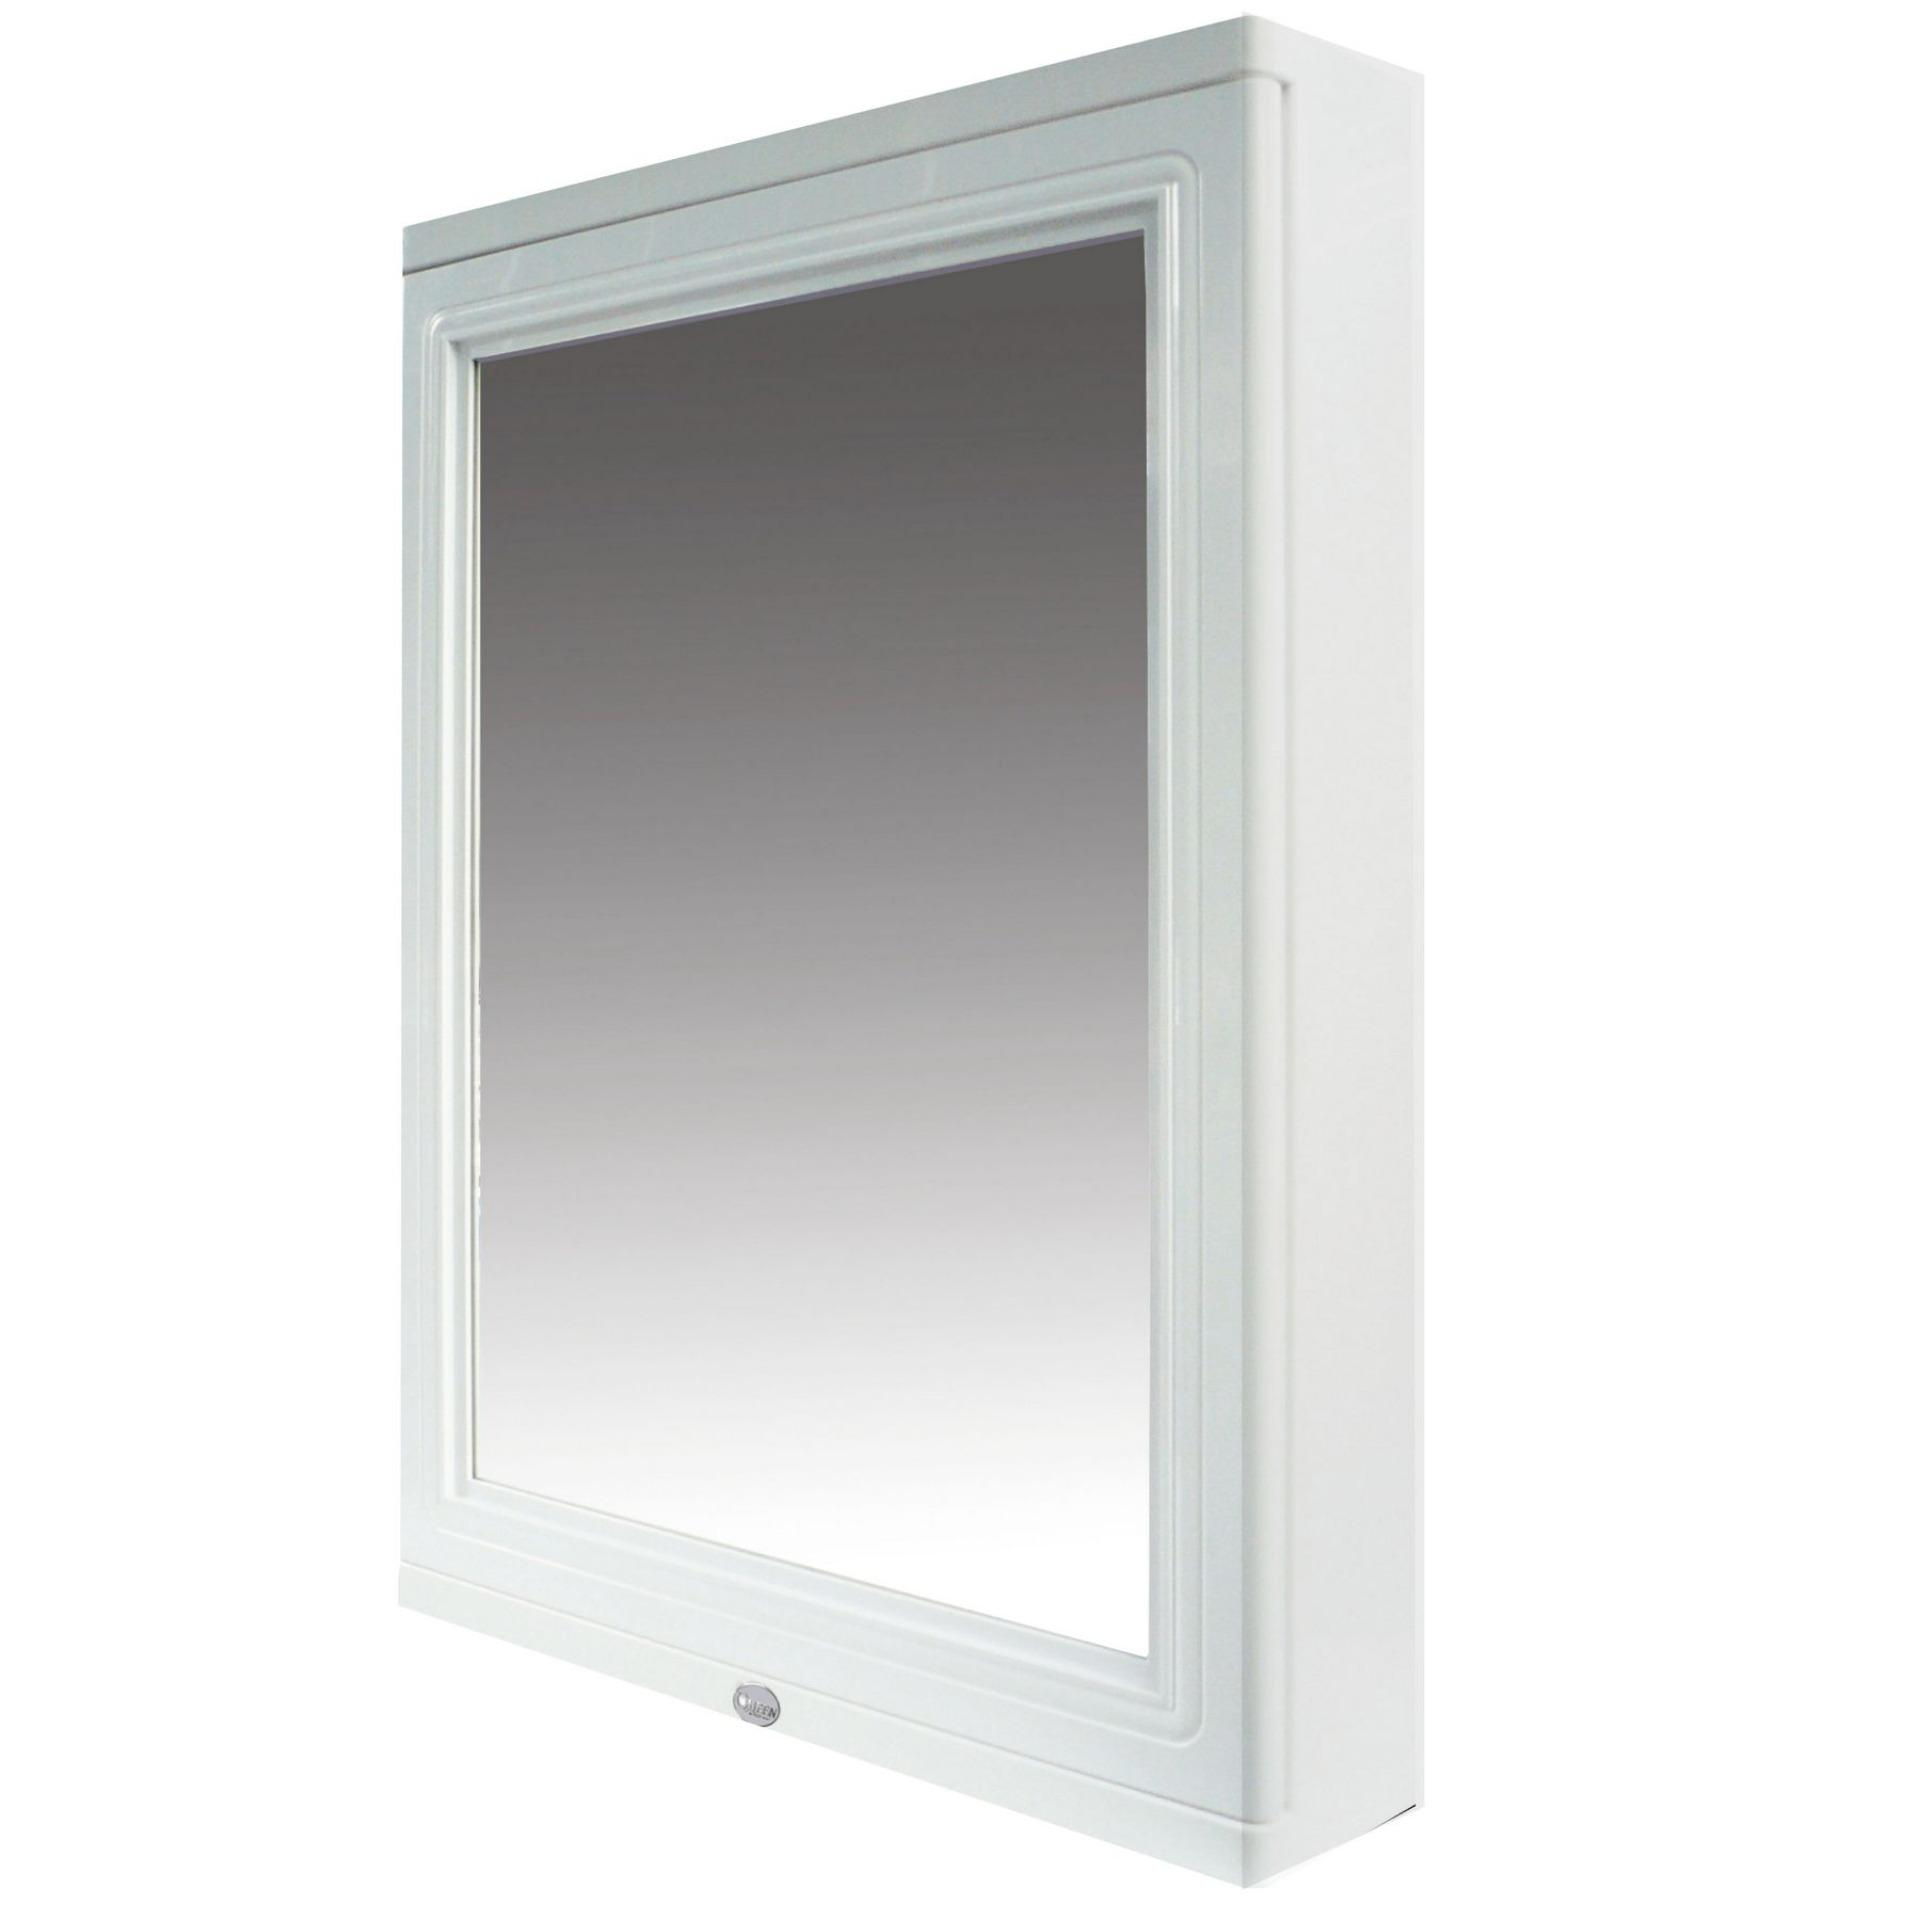 Queen Space Waterproof Bathroom Mirror Cabinet With Nano Coating - (white) By Legato Resources Pte Ltd.